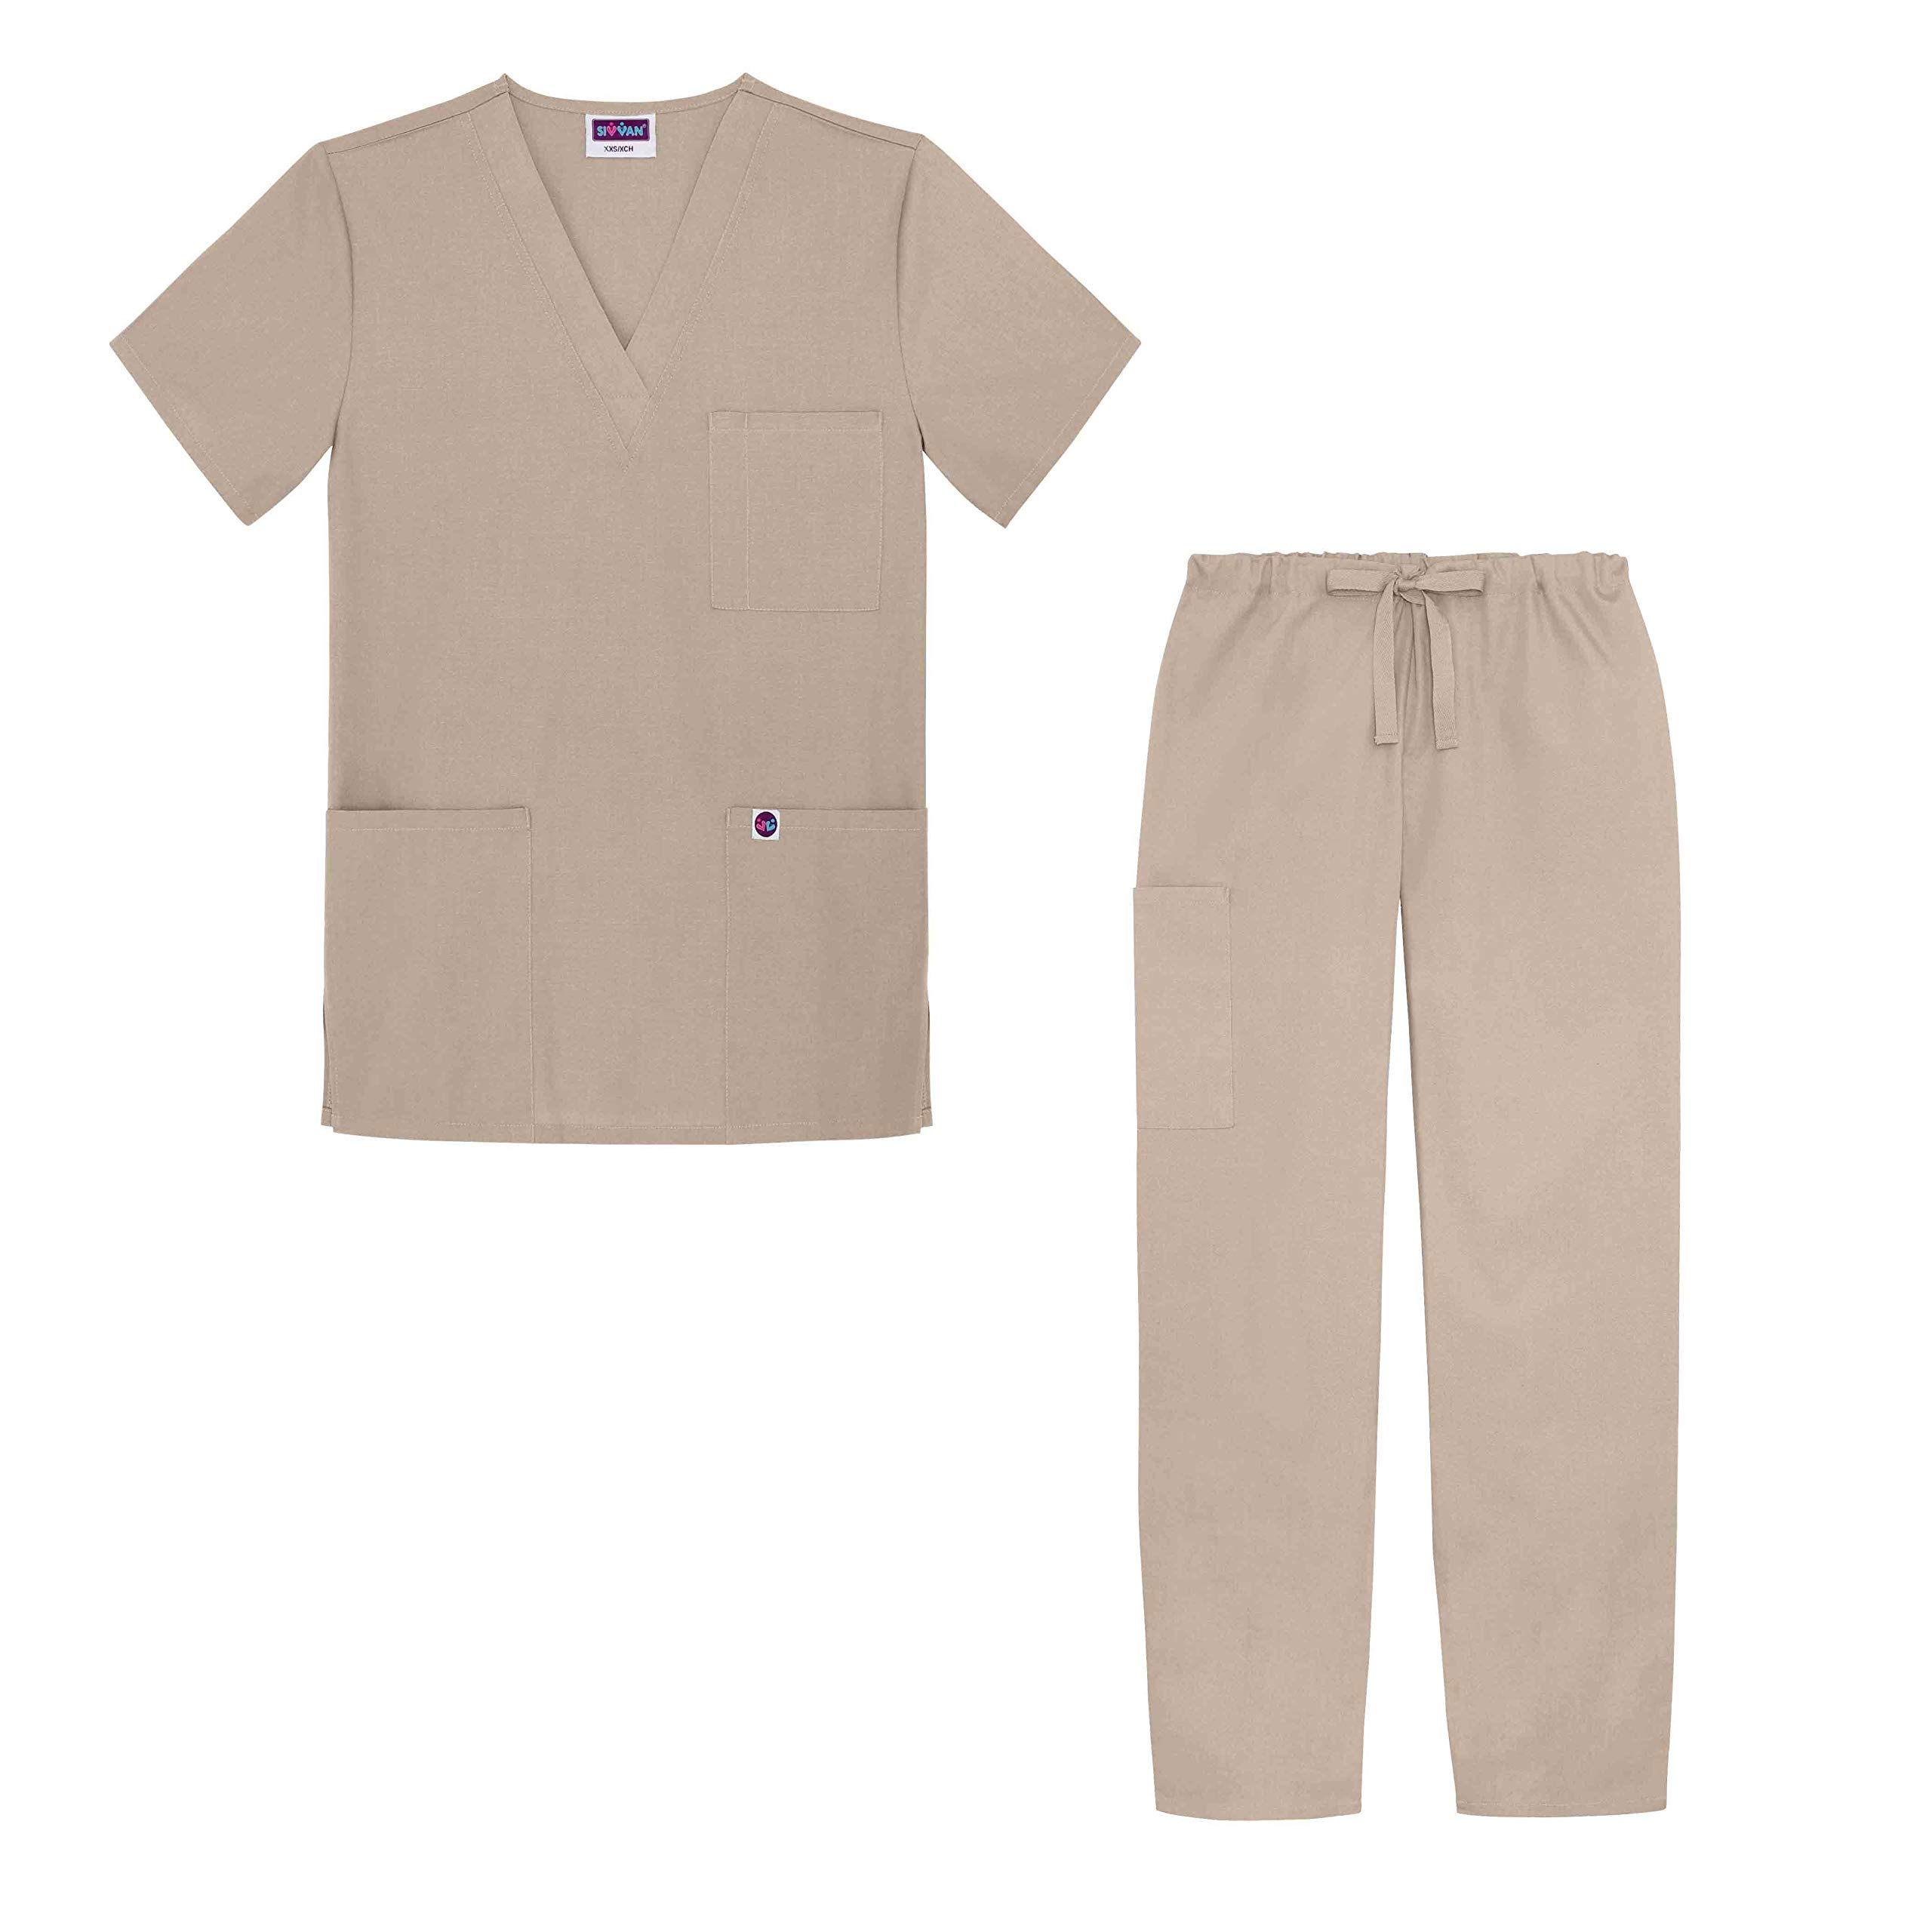 Sivvan Unisex Classic Scrub Set V Neck Top Drawstring Pants Available in 12 Solid